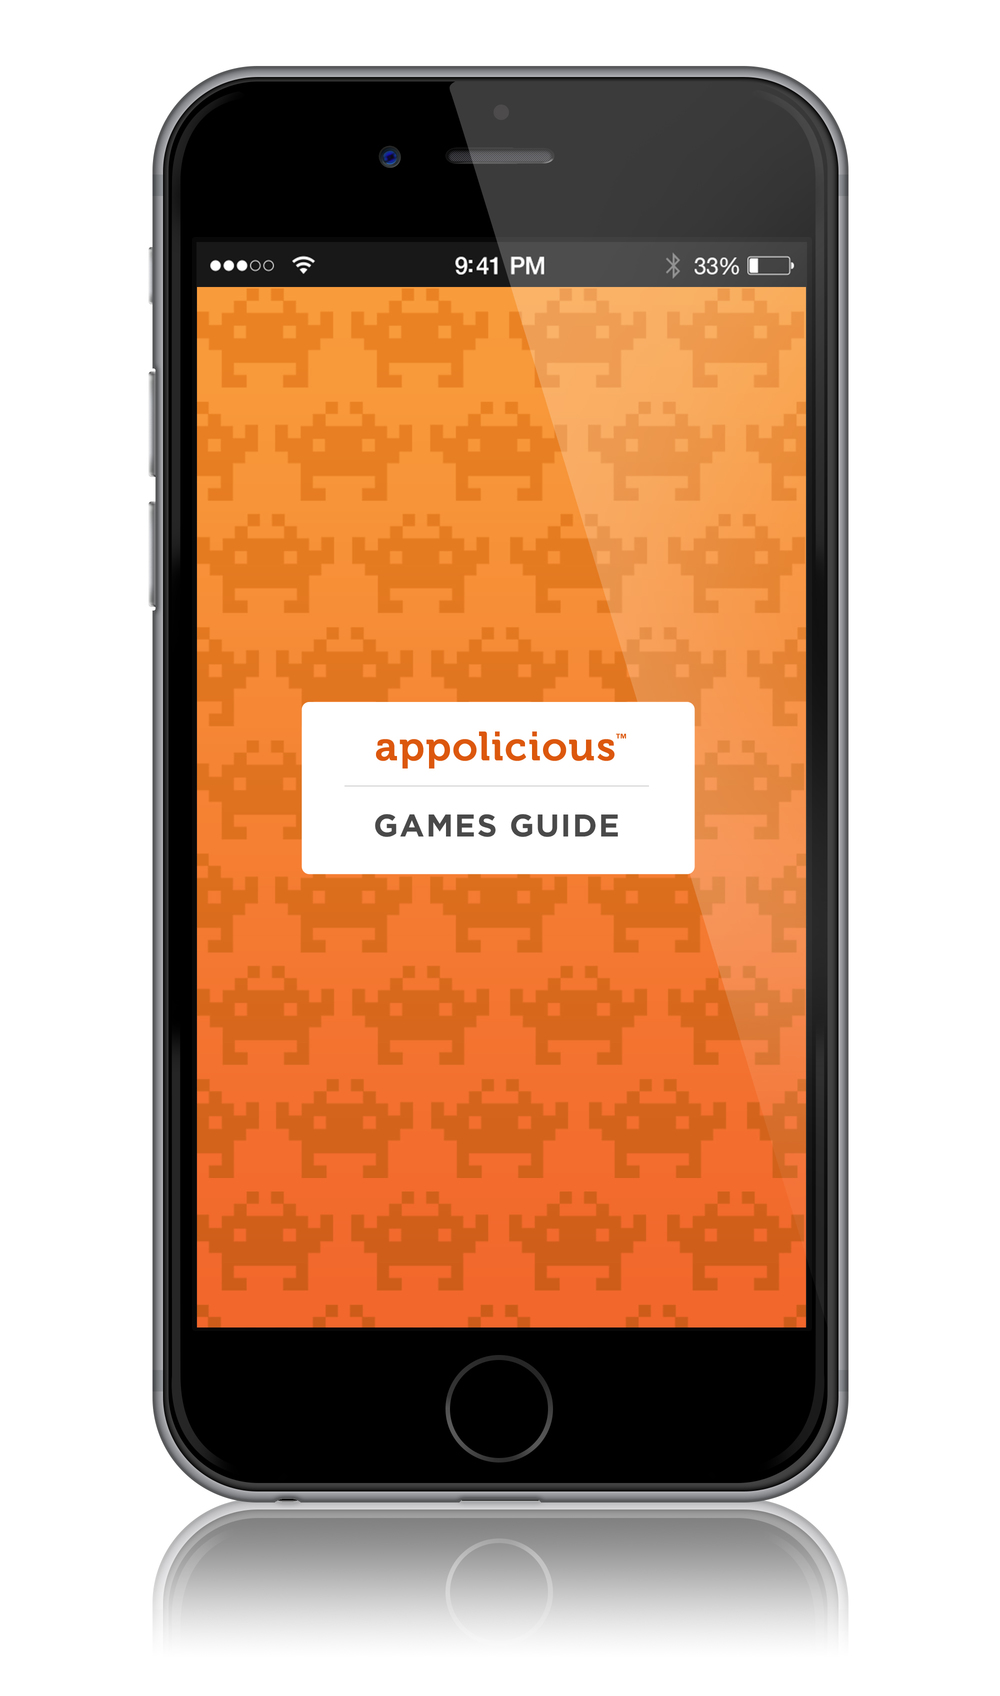 Appolicious Games Guide Loading Screen